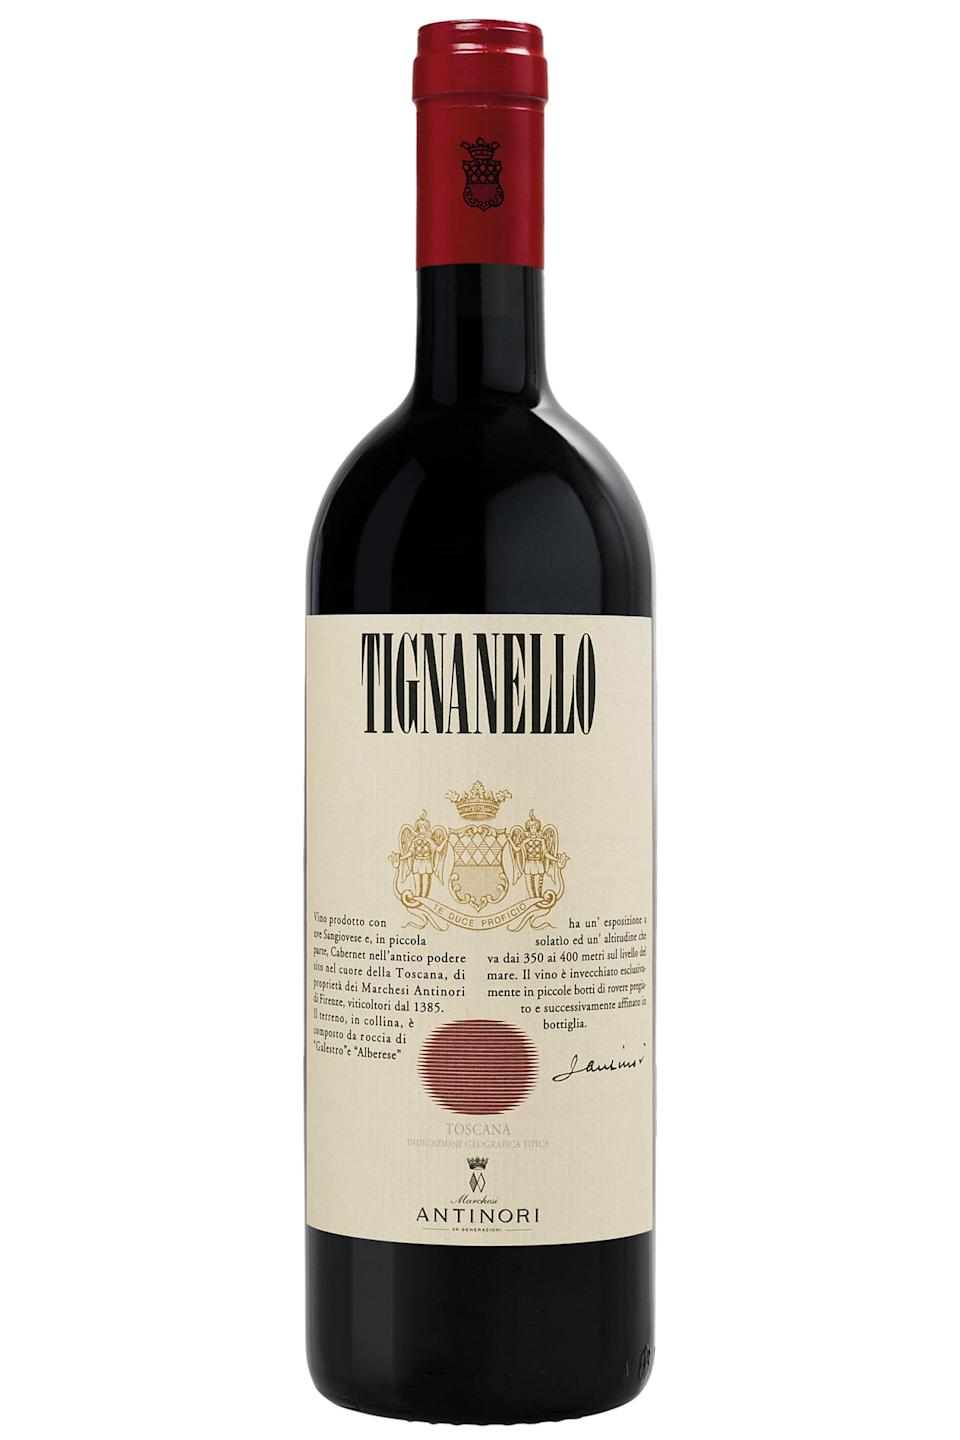 """<p>wine.com</p><p><strong>$134.99</strong></p><p><a href=""""https://go.redirectingat.com?id=74968X1596630&url=https%3A%2F%2Fwww.wine.com%2Fproduct%2Fantinori-tignanello-2016%2F524239&sref=https%3A%2F%2Fwww.townandcountrymag.com%2Fleisure%2Fdrinks%2Fg32392235%2Fbest-red-wine%2F"""" rel=""""nofollow noopener"""" target=""""_blank"""" data-ylk=""""slk:Shop Now"""" class=""""link rapid-noclick-resp"""">Shop Now</a></p><p>Wine.com Director of Education Gwendolyn Osborn recommends this Tignanello from Tuscany's oldest winemaking family, the Antinoris. """"It's a classic that demonstrates the growth of Tuscany over the past 50 years, blending a sense of tradition with innovation,"""" she says.</p>"""